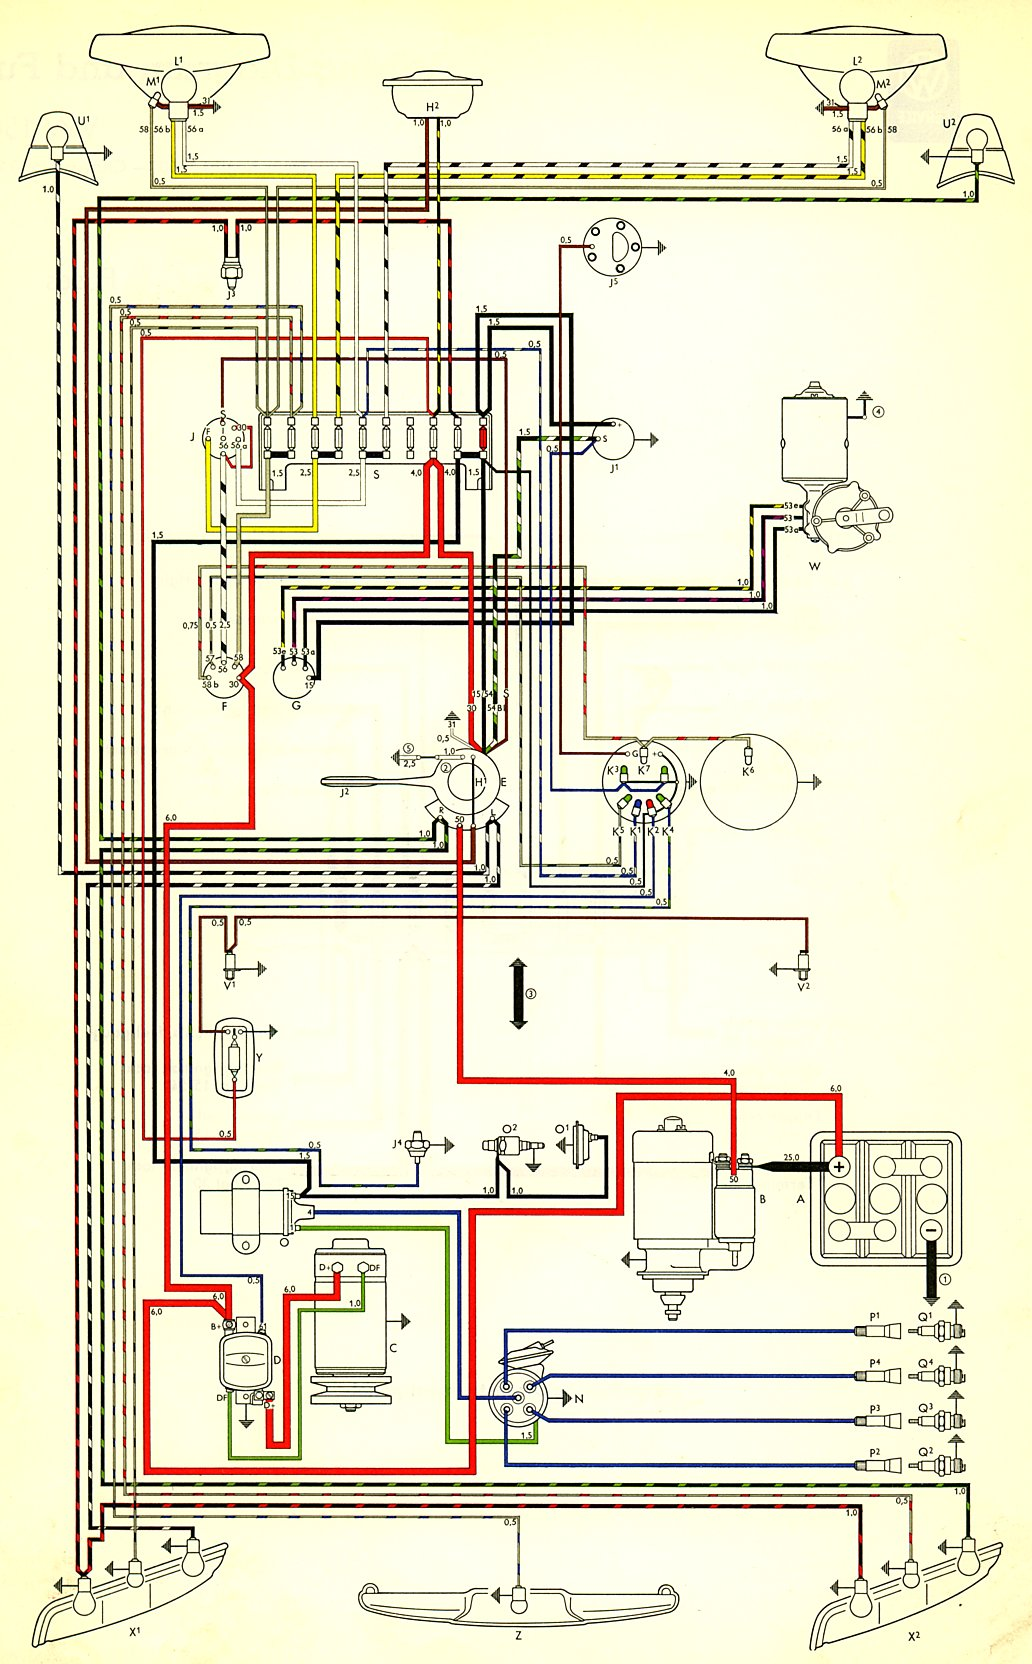 Volkswagen Type 3 Wiring Diagram - Acdelco Alternator Wiring -  light-switch.periihh.jeanjaures37.frWiring Diagram Resource